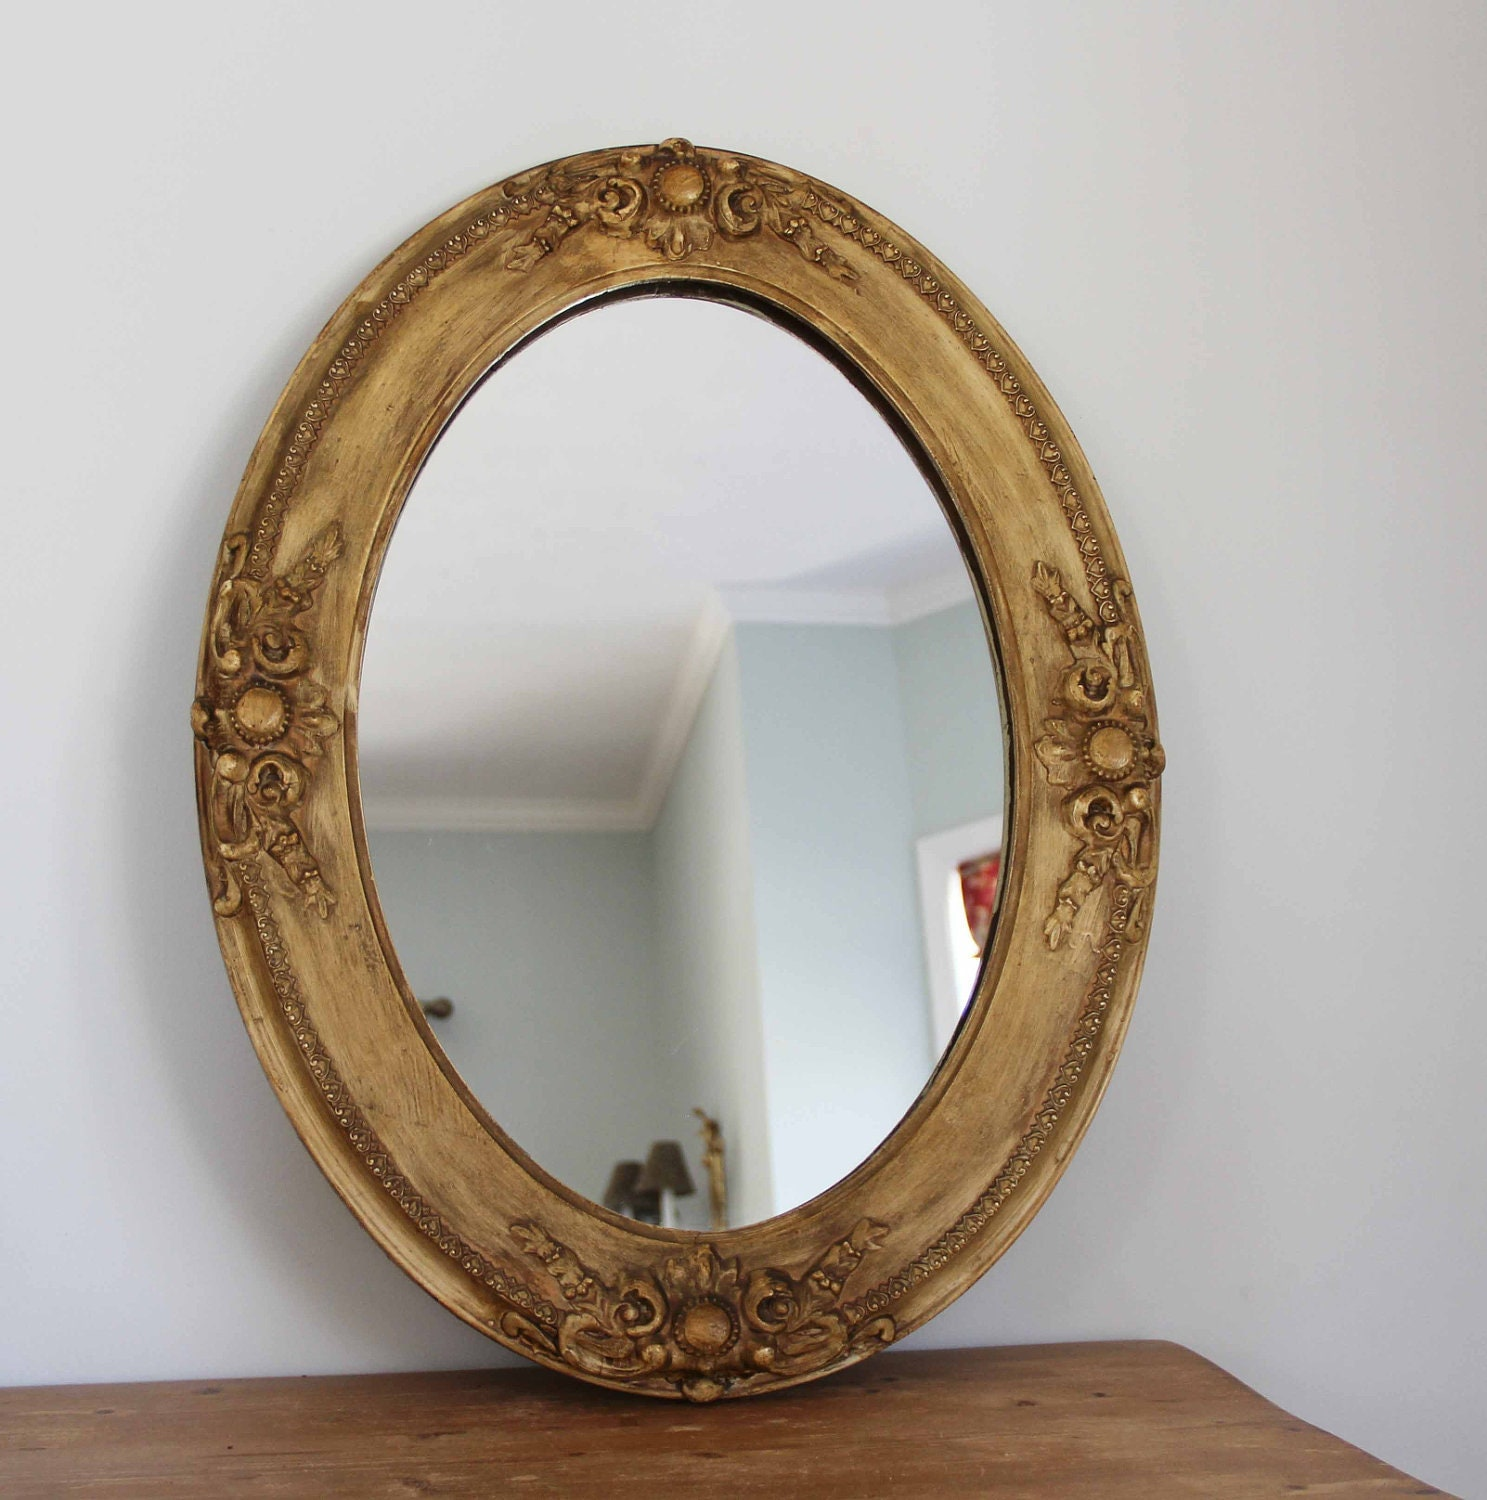 Antique Oval Wall Mirror With Carved Wooden Frame By